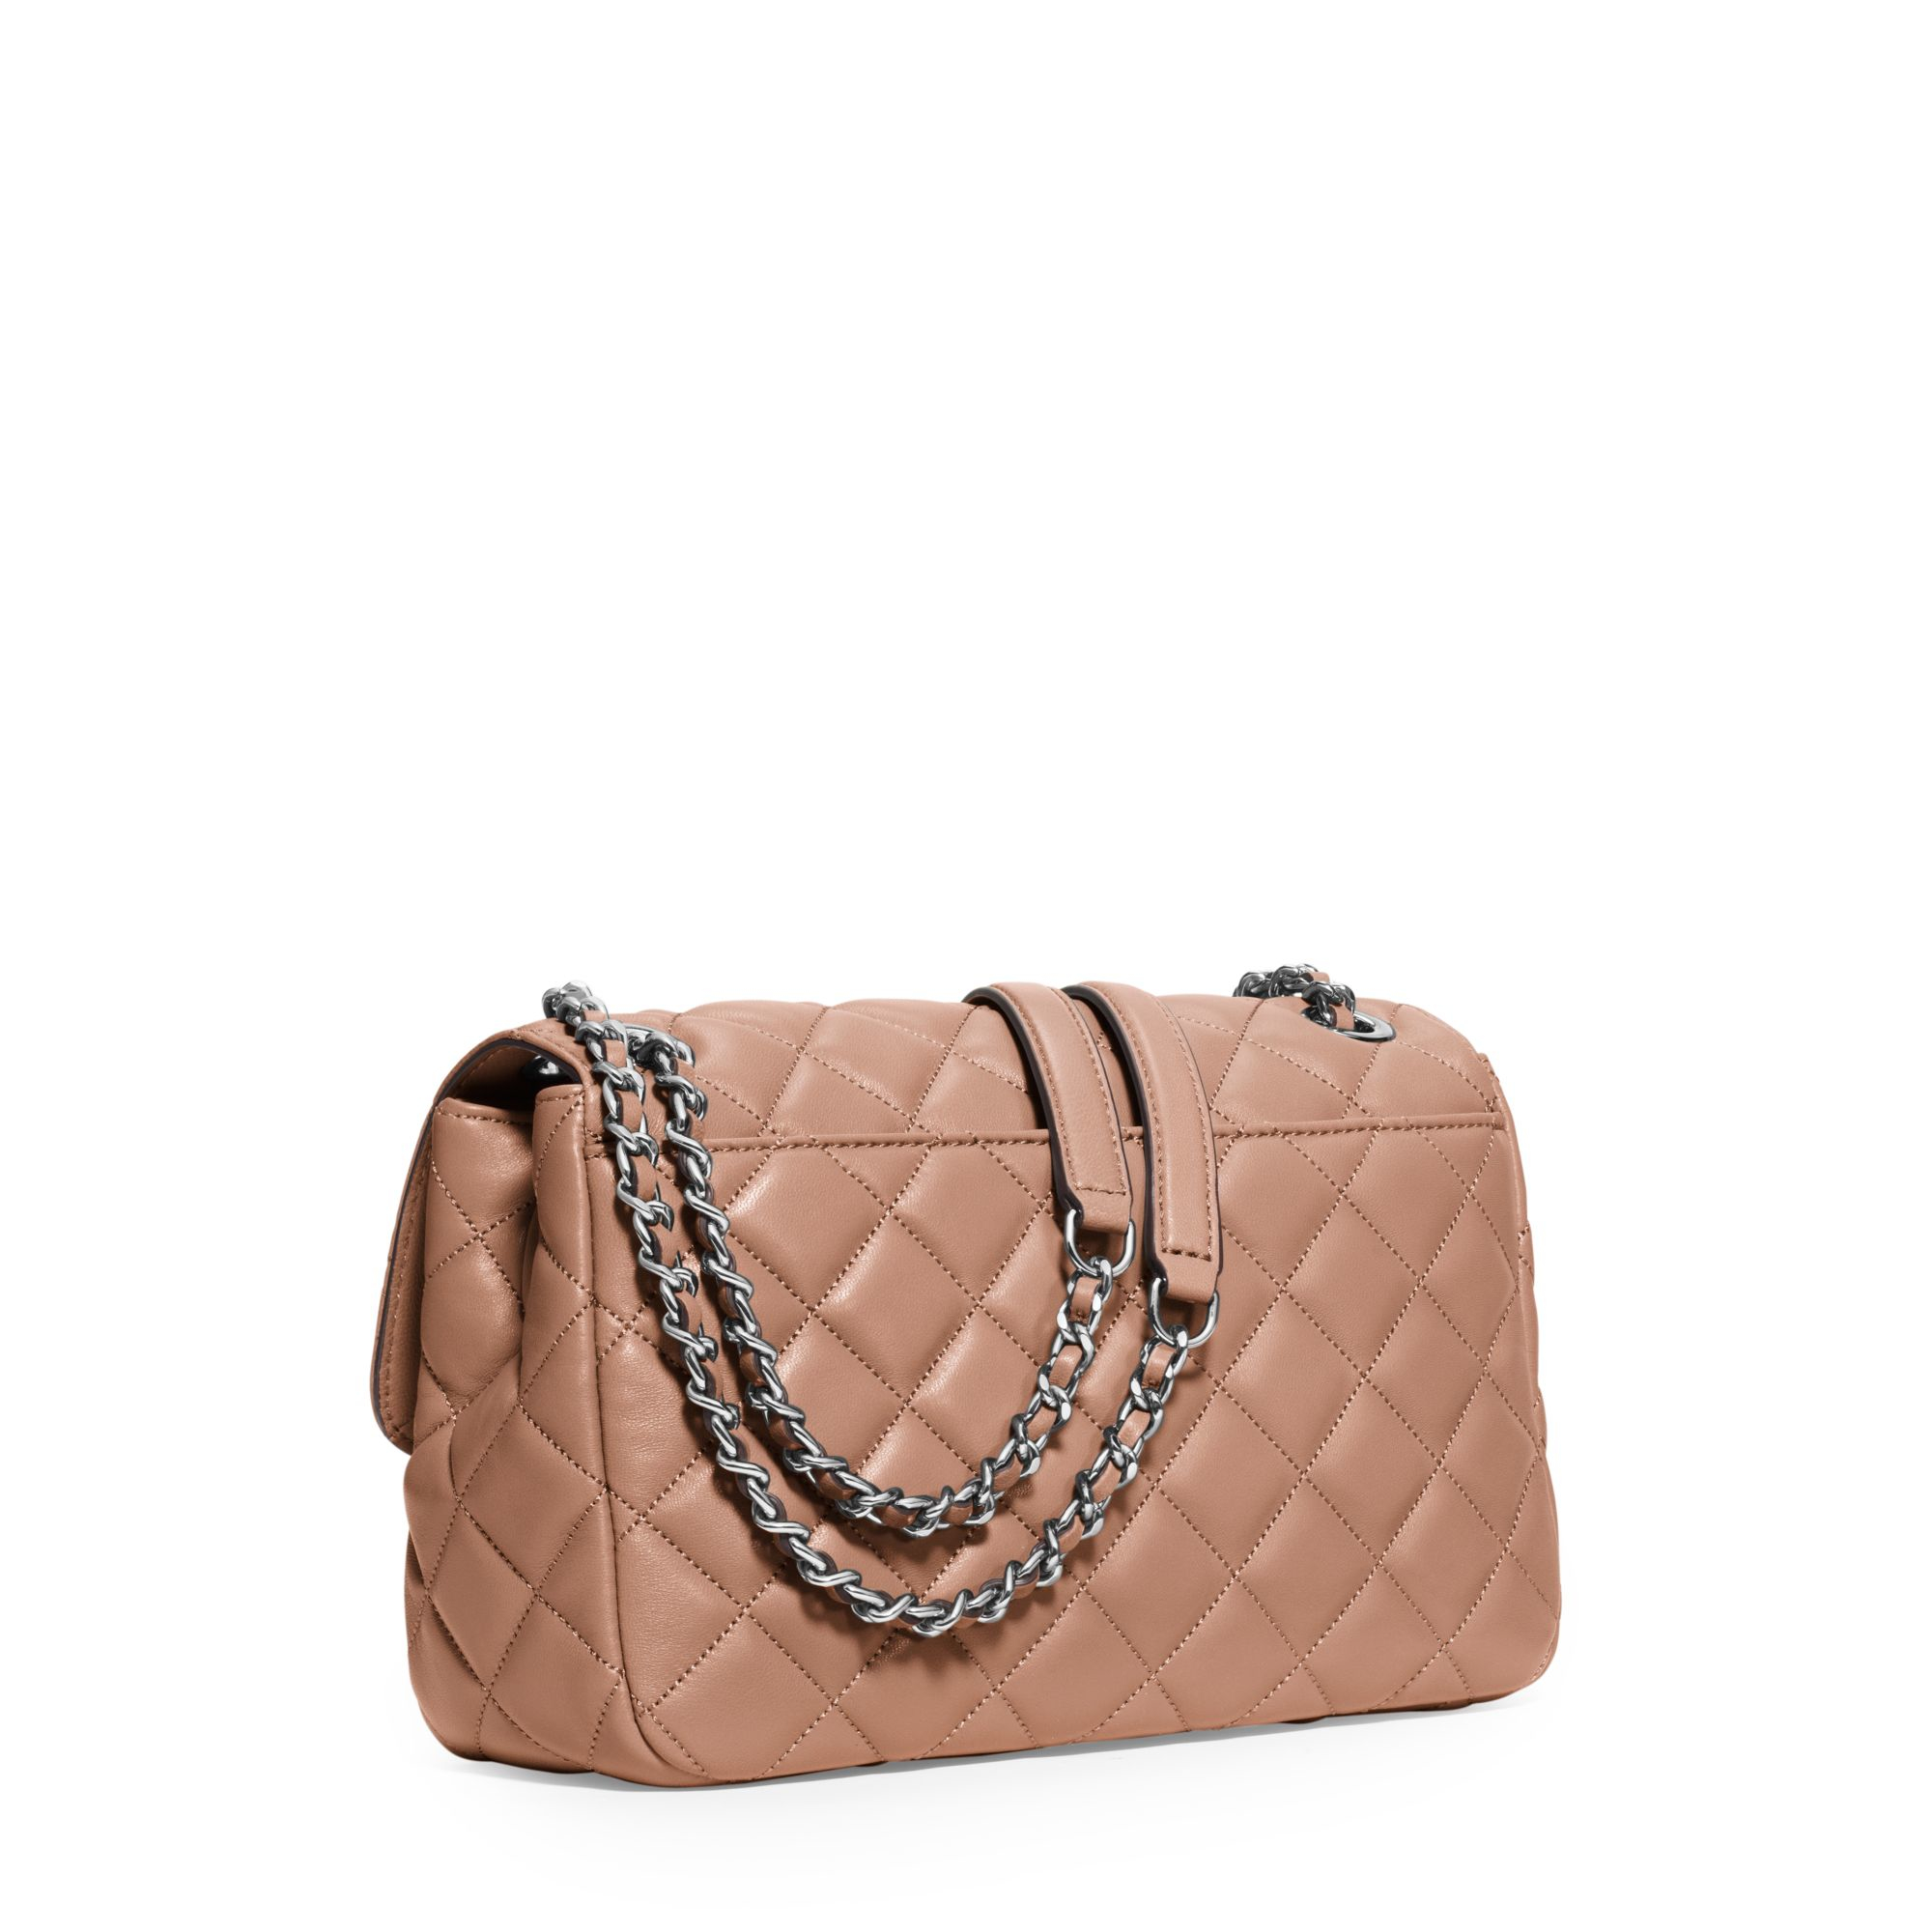 5537ca03a8 Lyst Michael Kors Sloan Large Quilted Leather Shoulder Bag In Pink